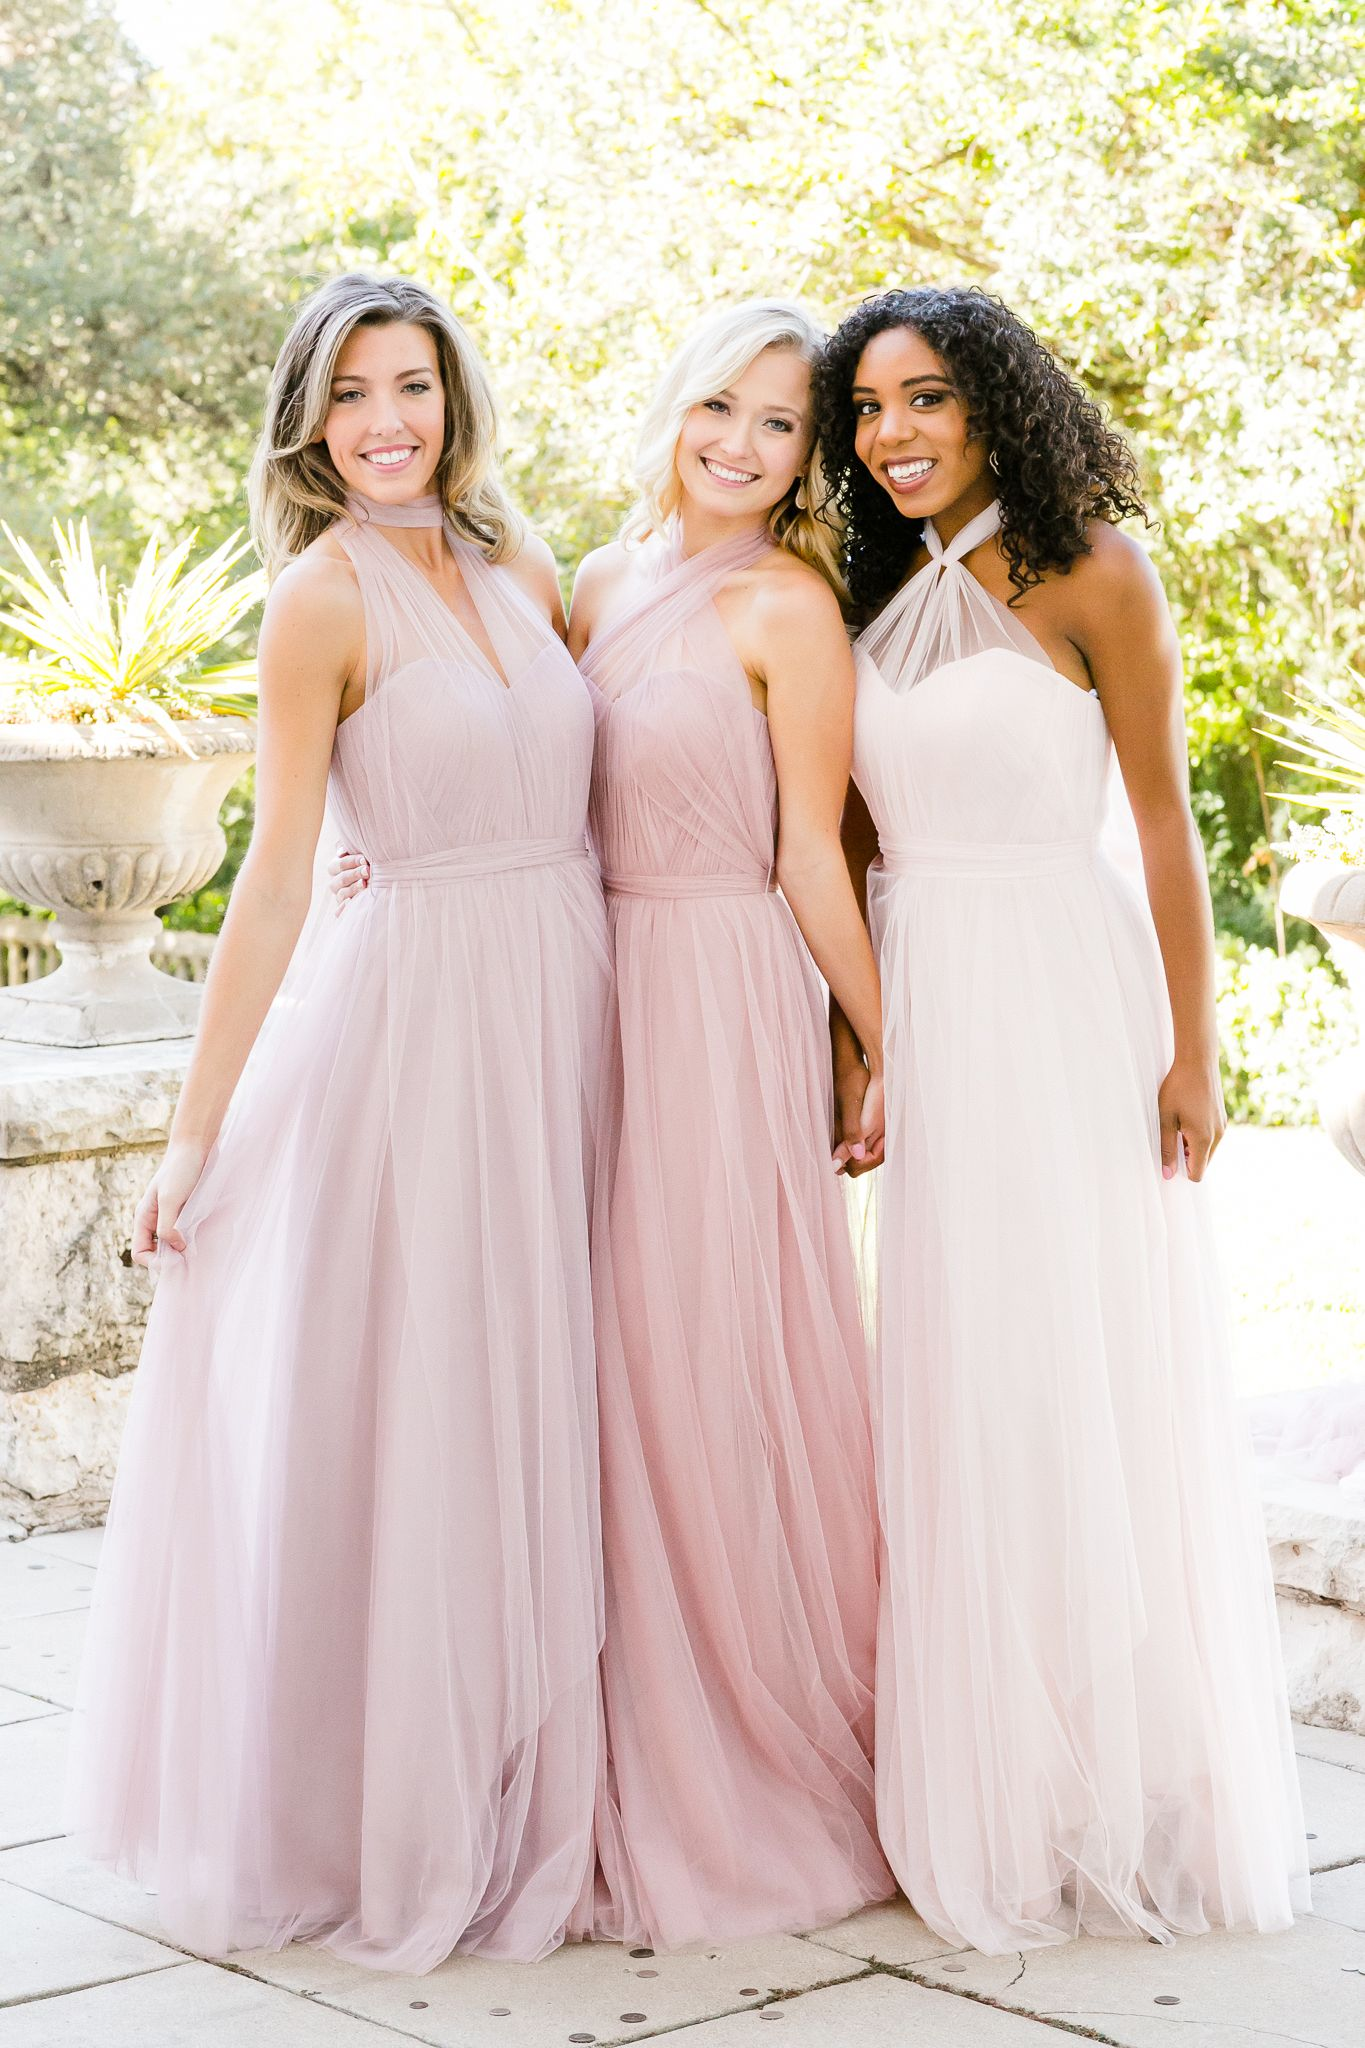 Mix and match revelry bridesmaid dresses and separatesvelry has mix and match revelry bridesmaid dresses and separatesvelry has a wide selection of unique bridesmaids dresses including tulle skirts classic chiffon ombrellifo Choice Image